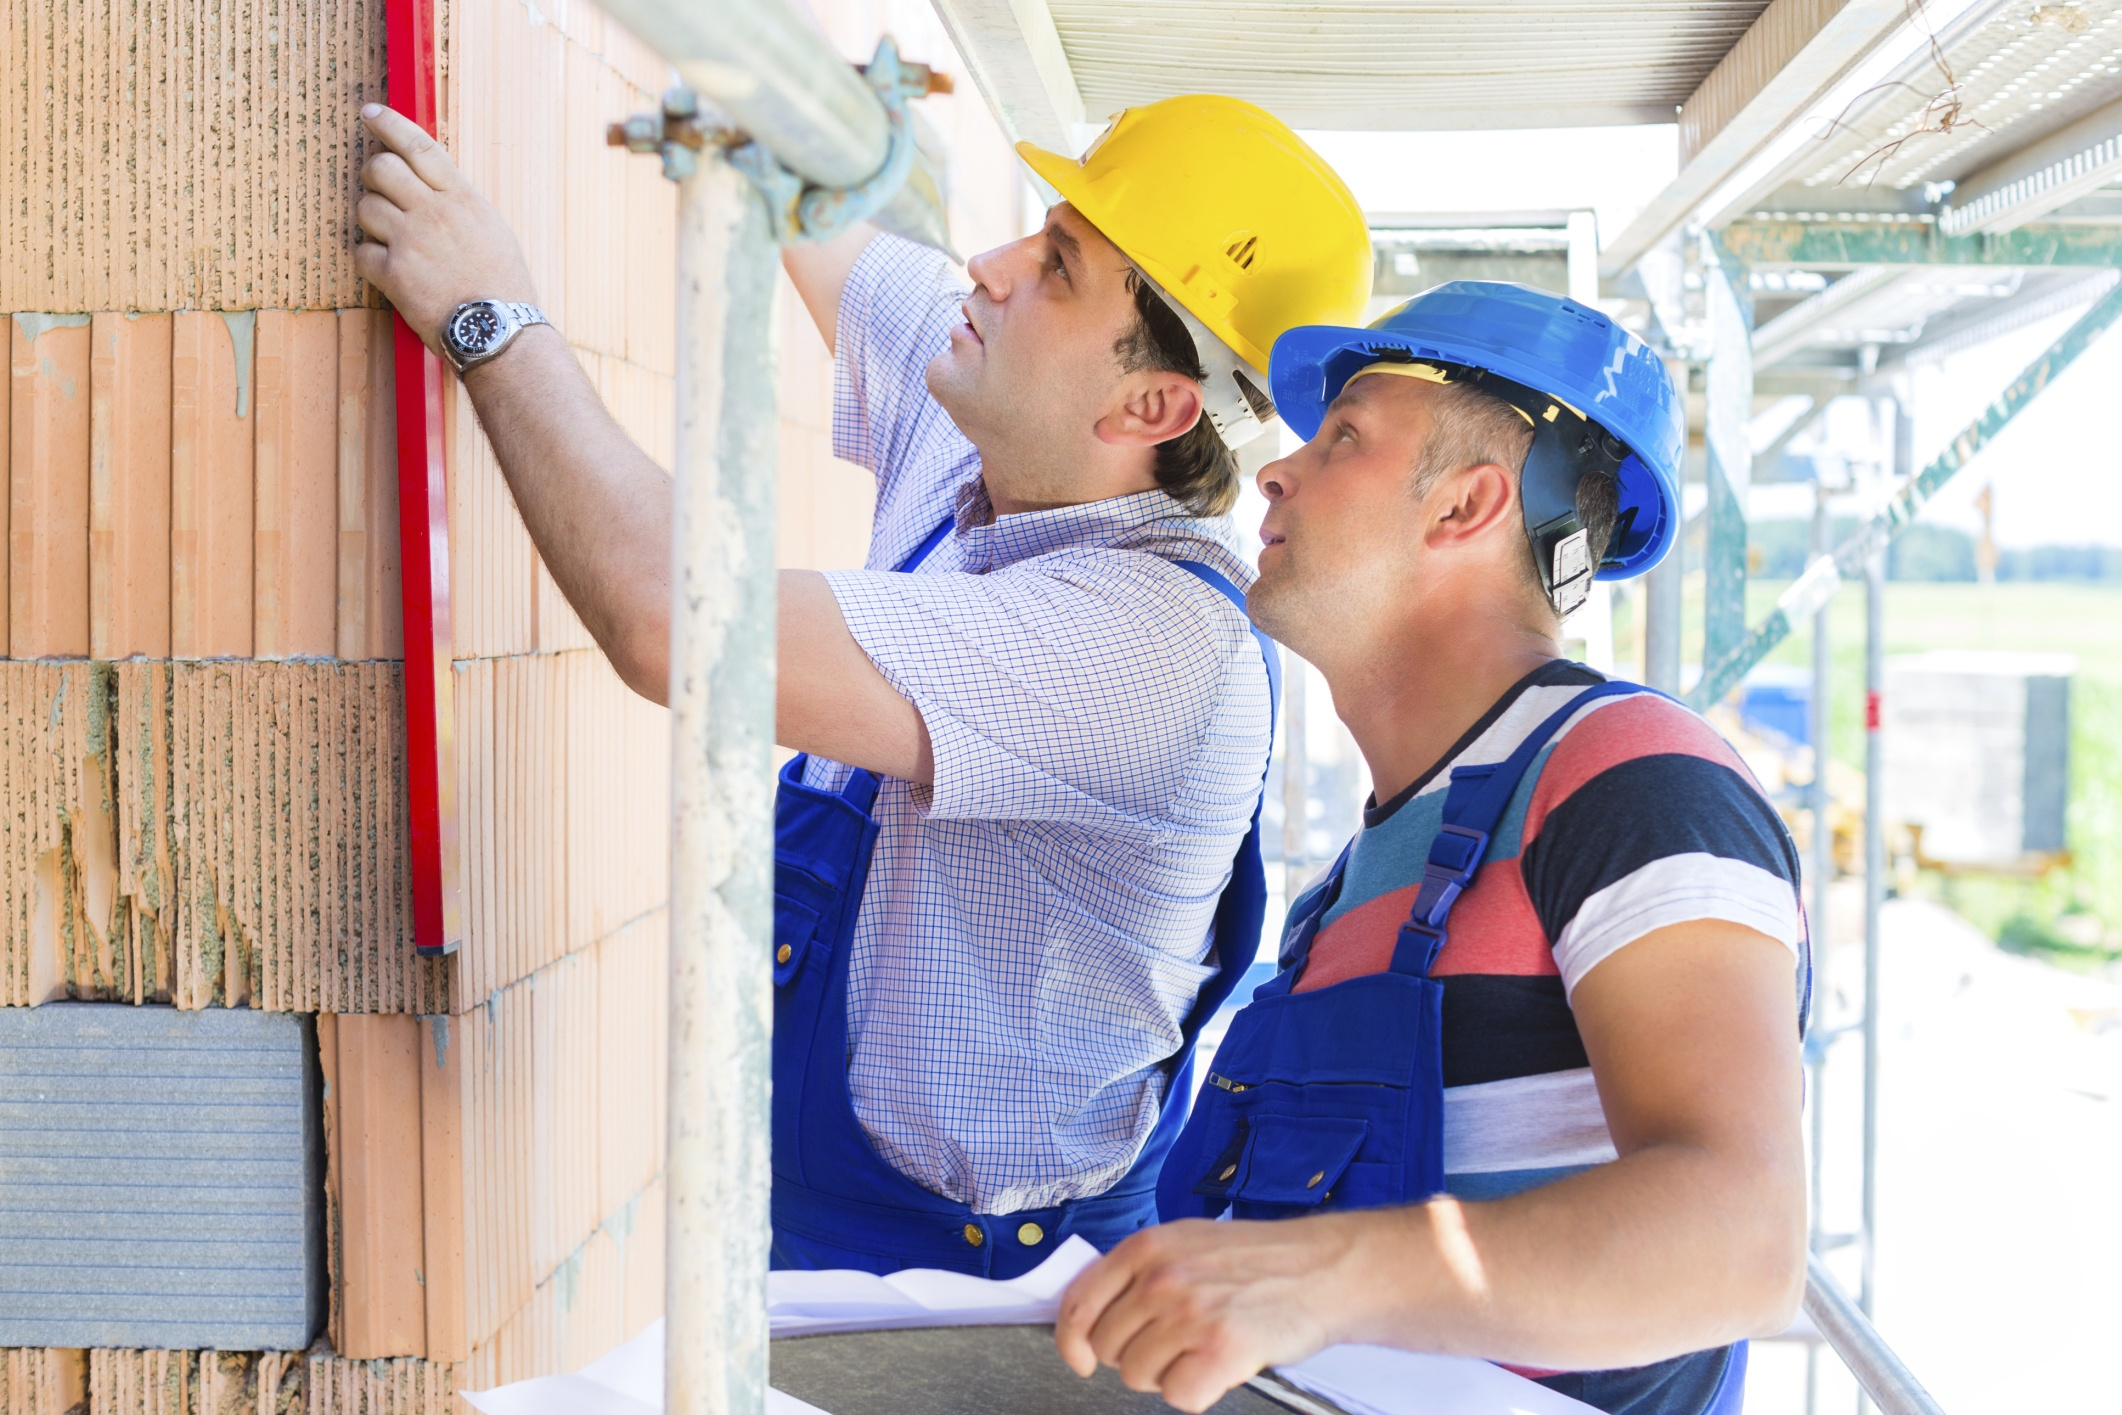 hire the insurance company contractor